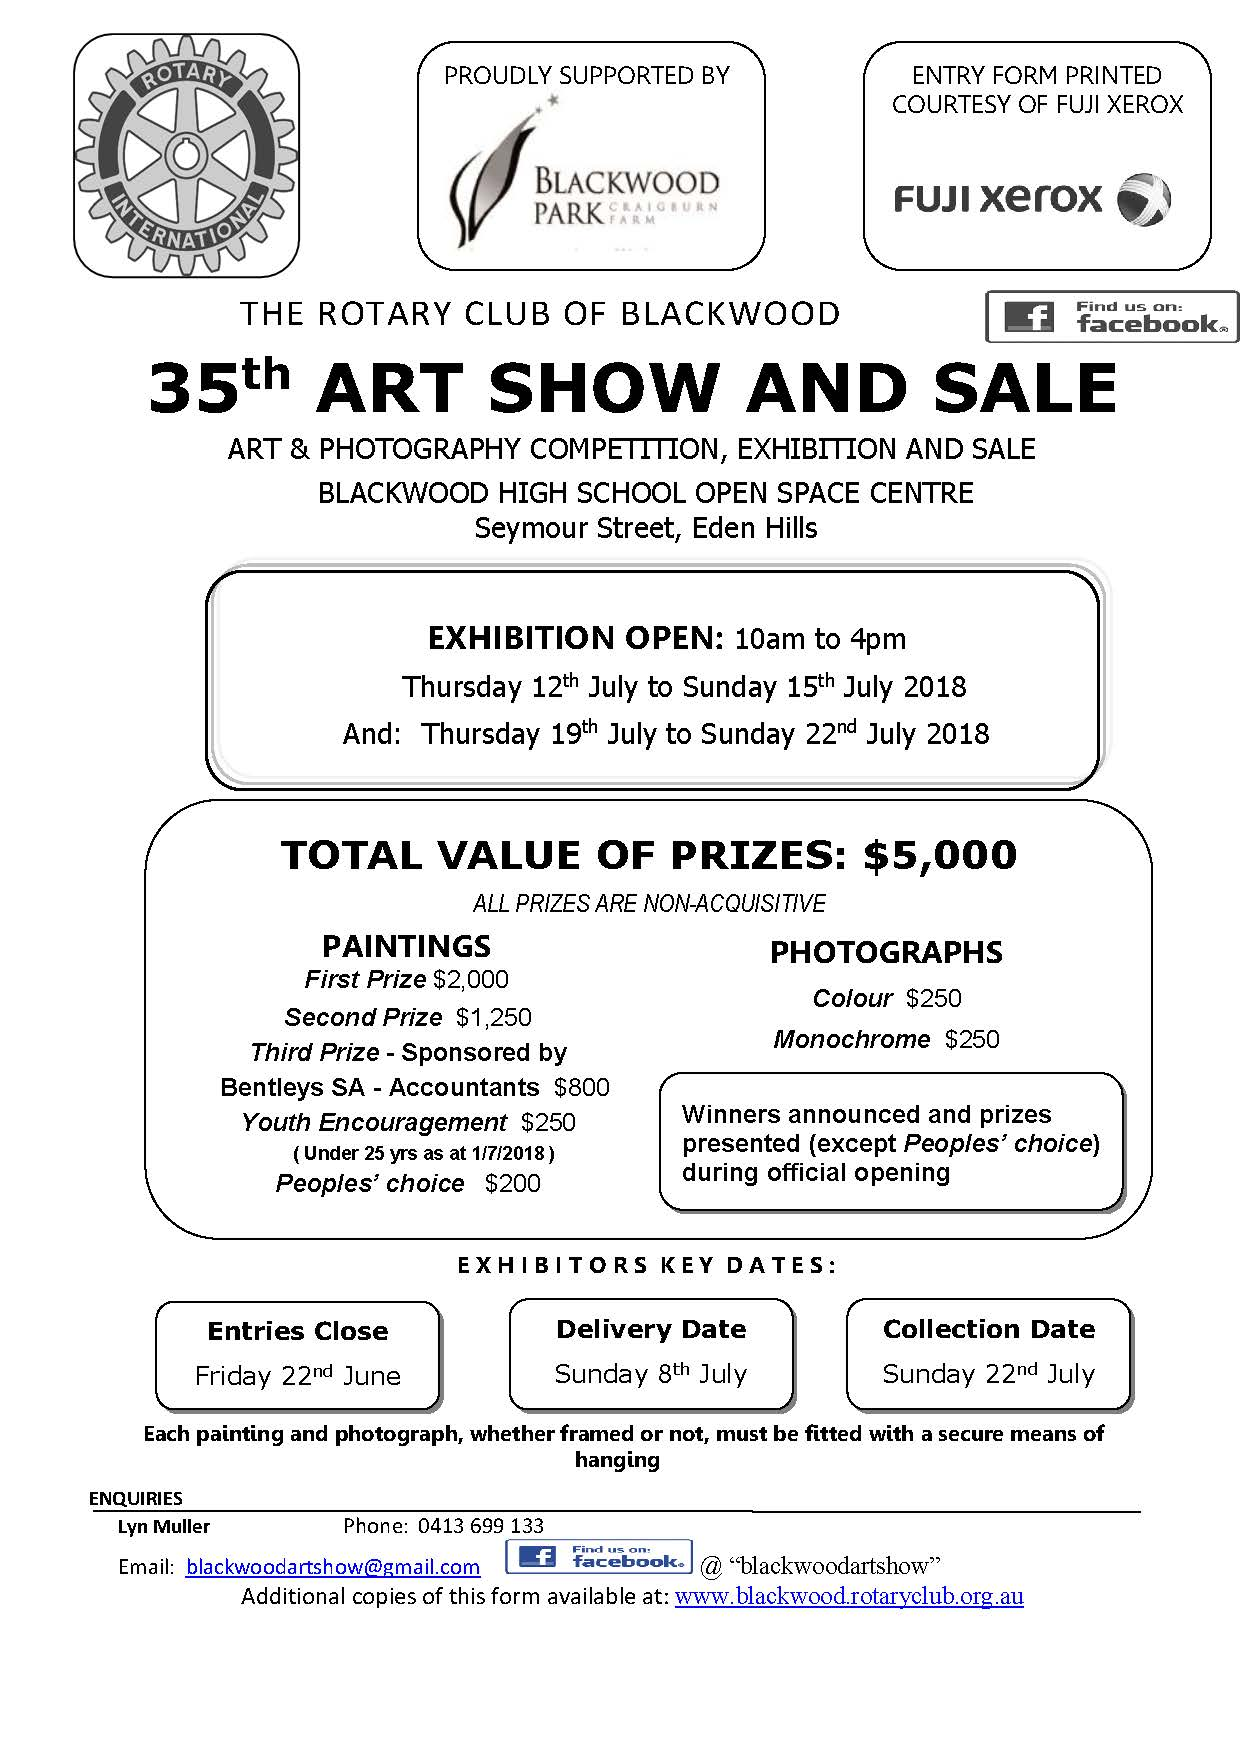 2018 Blackwood Rotary Art Show entry form pages 1-4_Page_1.jpg